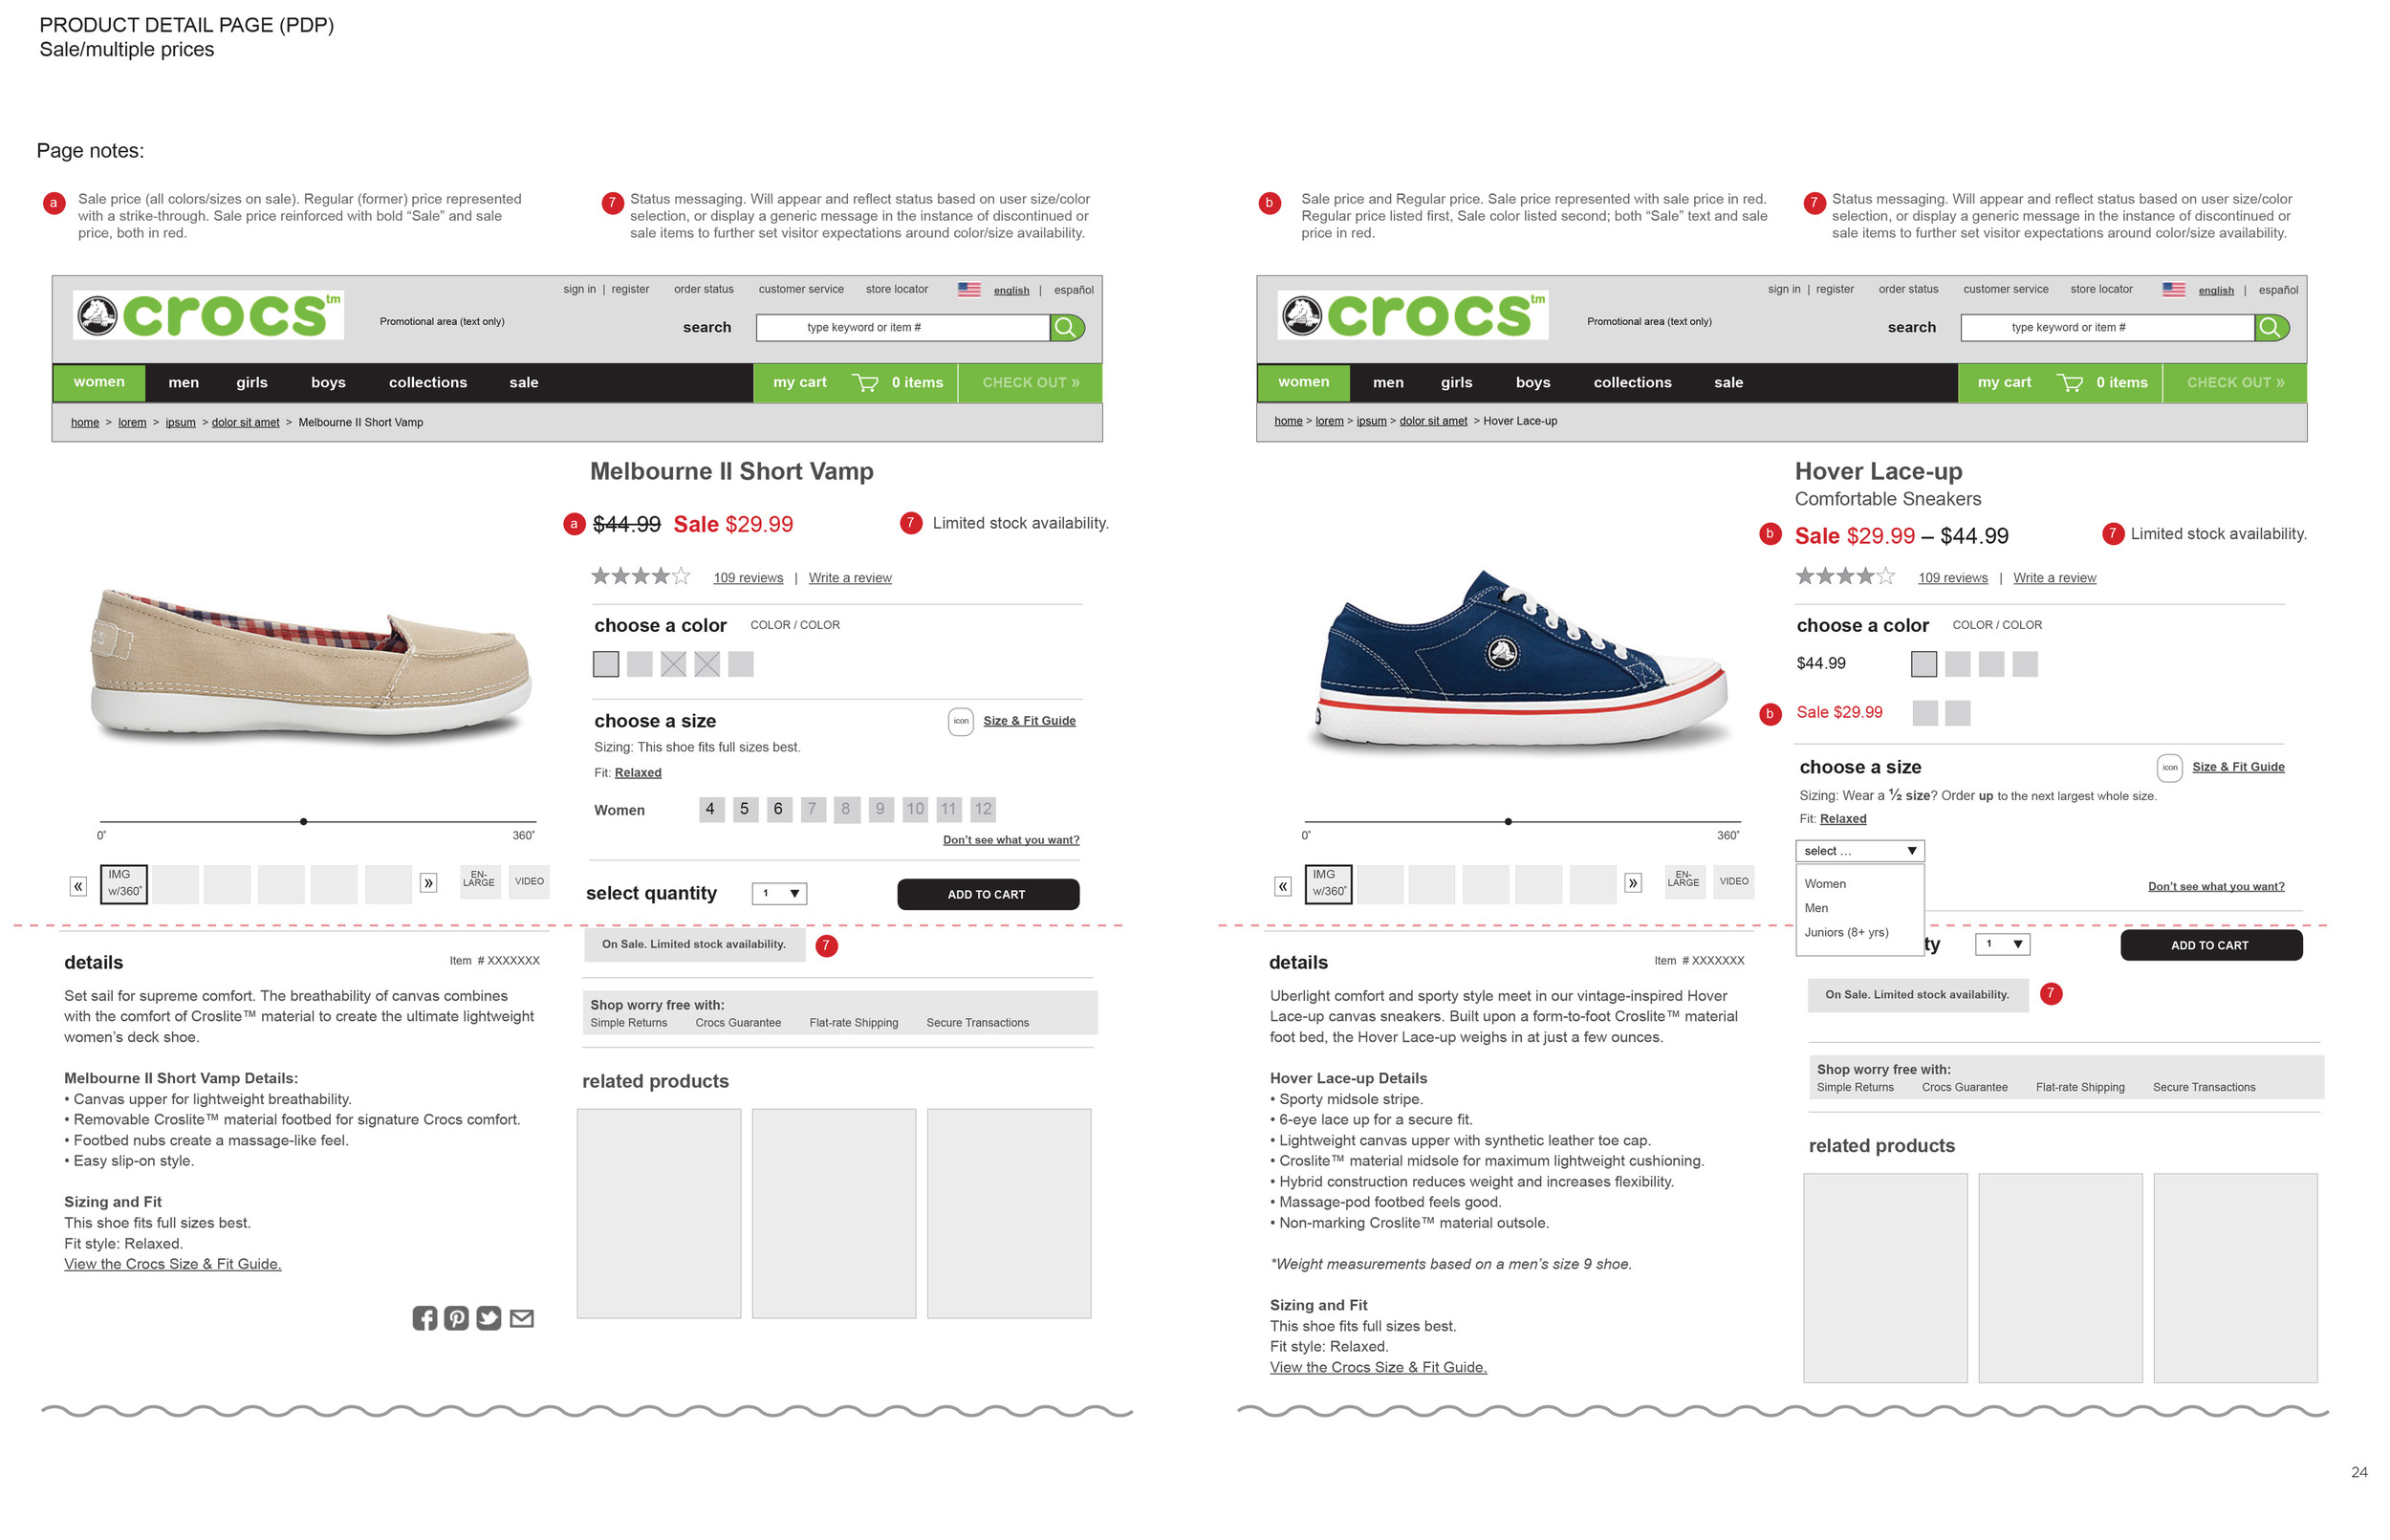 User experience planning: product detail page